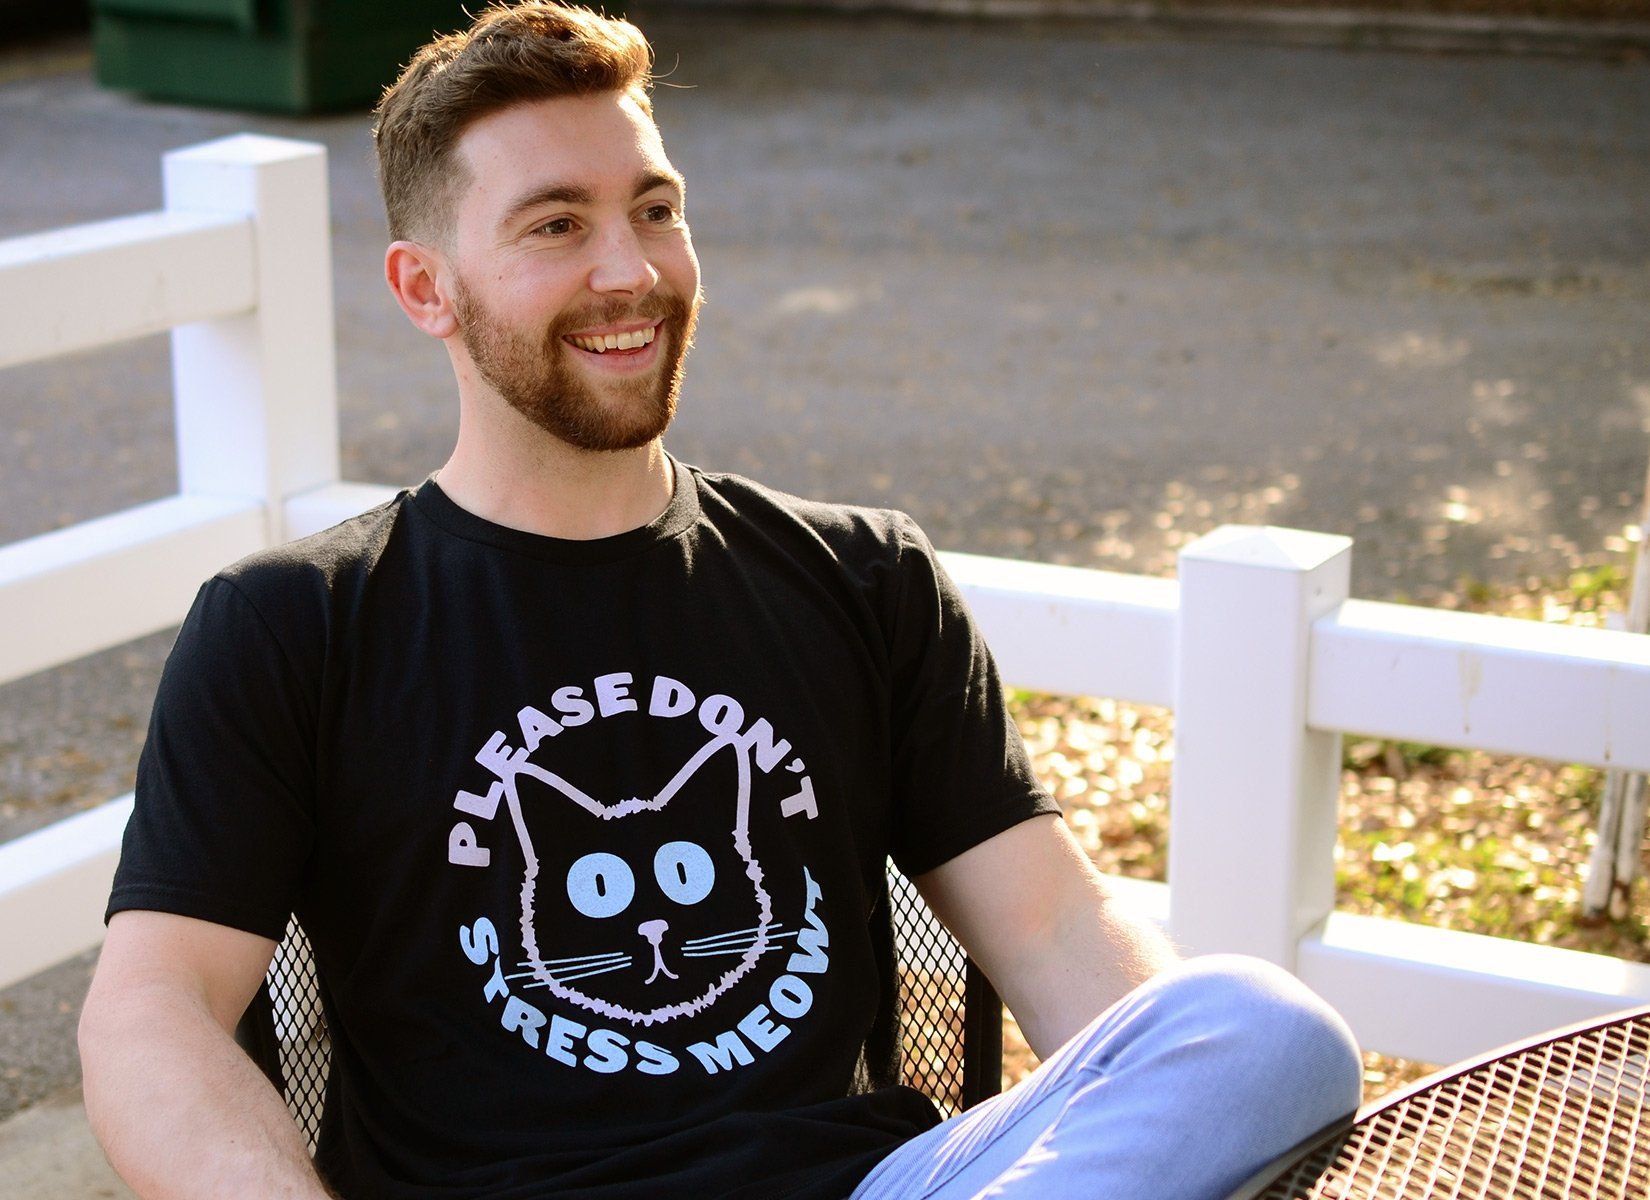 Please Don't Stress Meowt on Mens T-Shirt